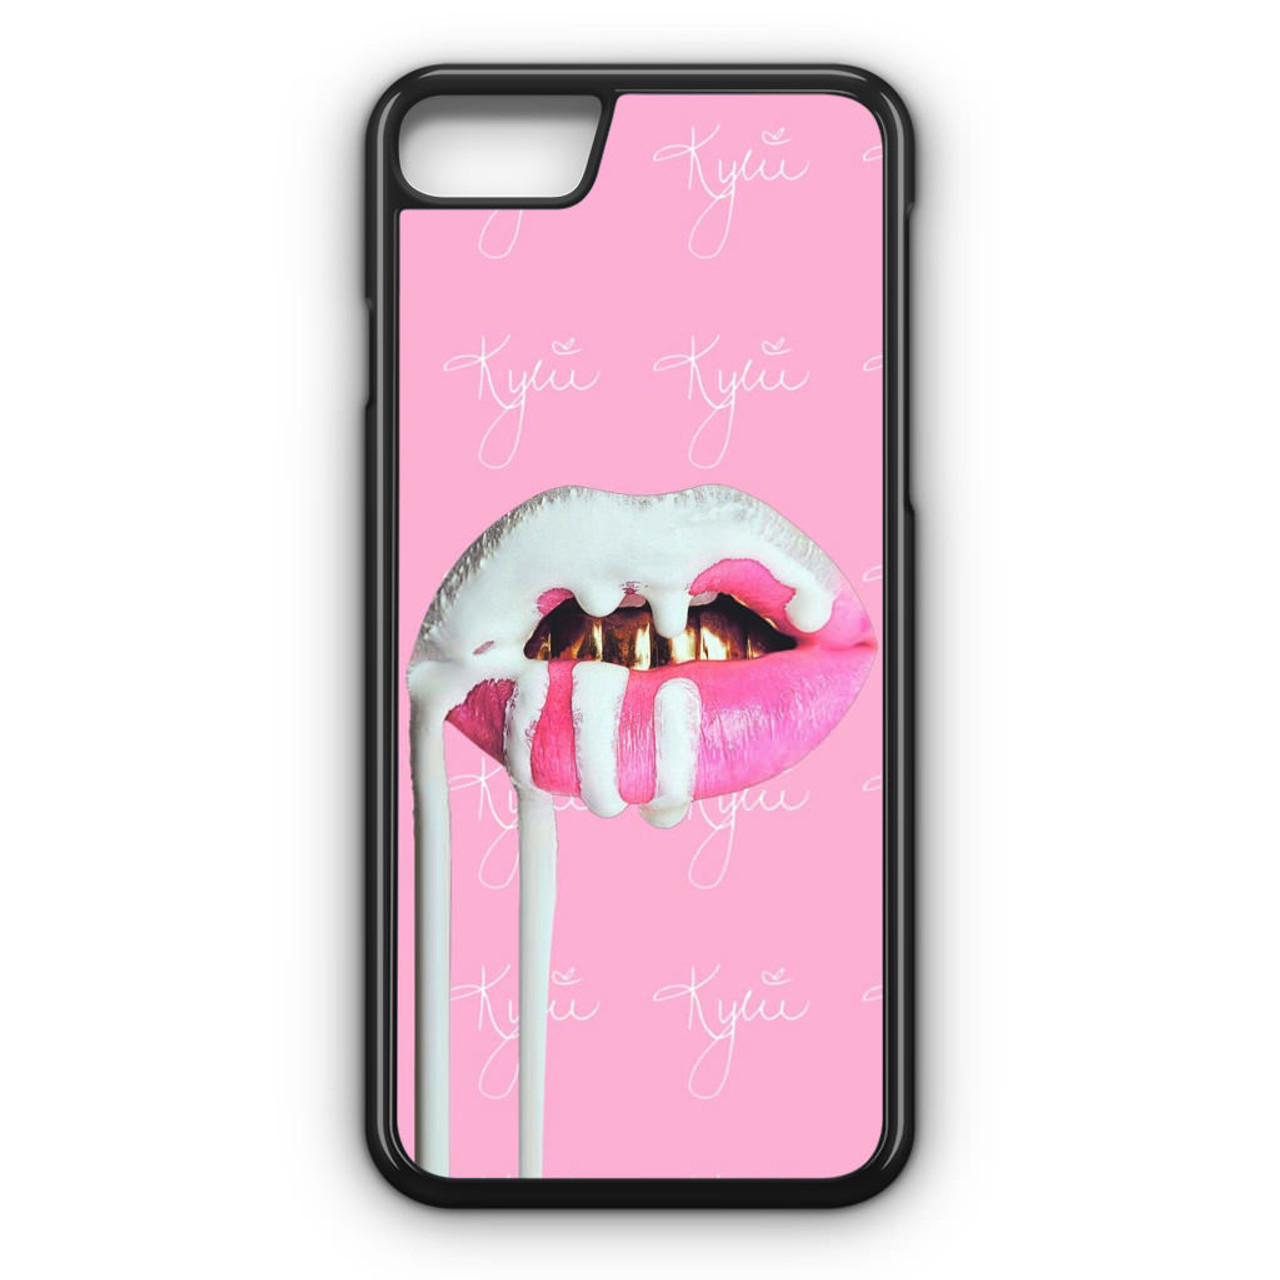 kylie jenner iphone 8 case